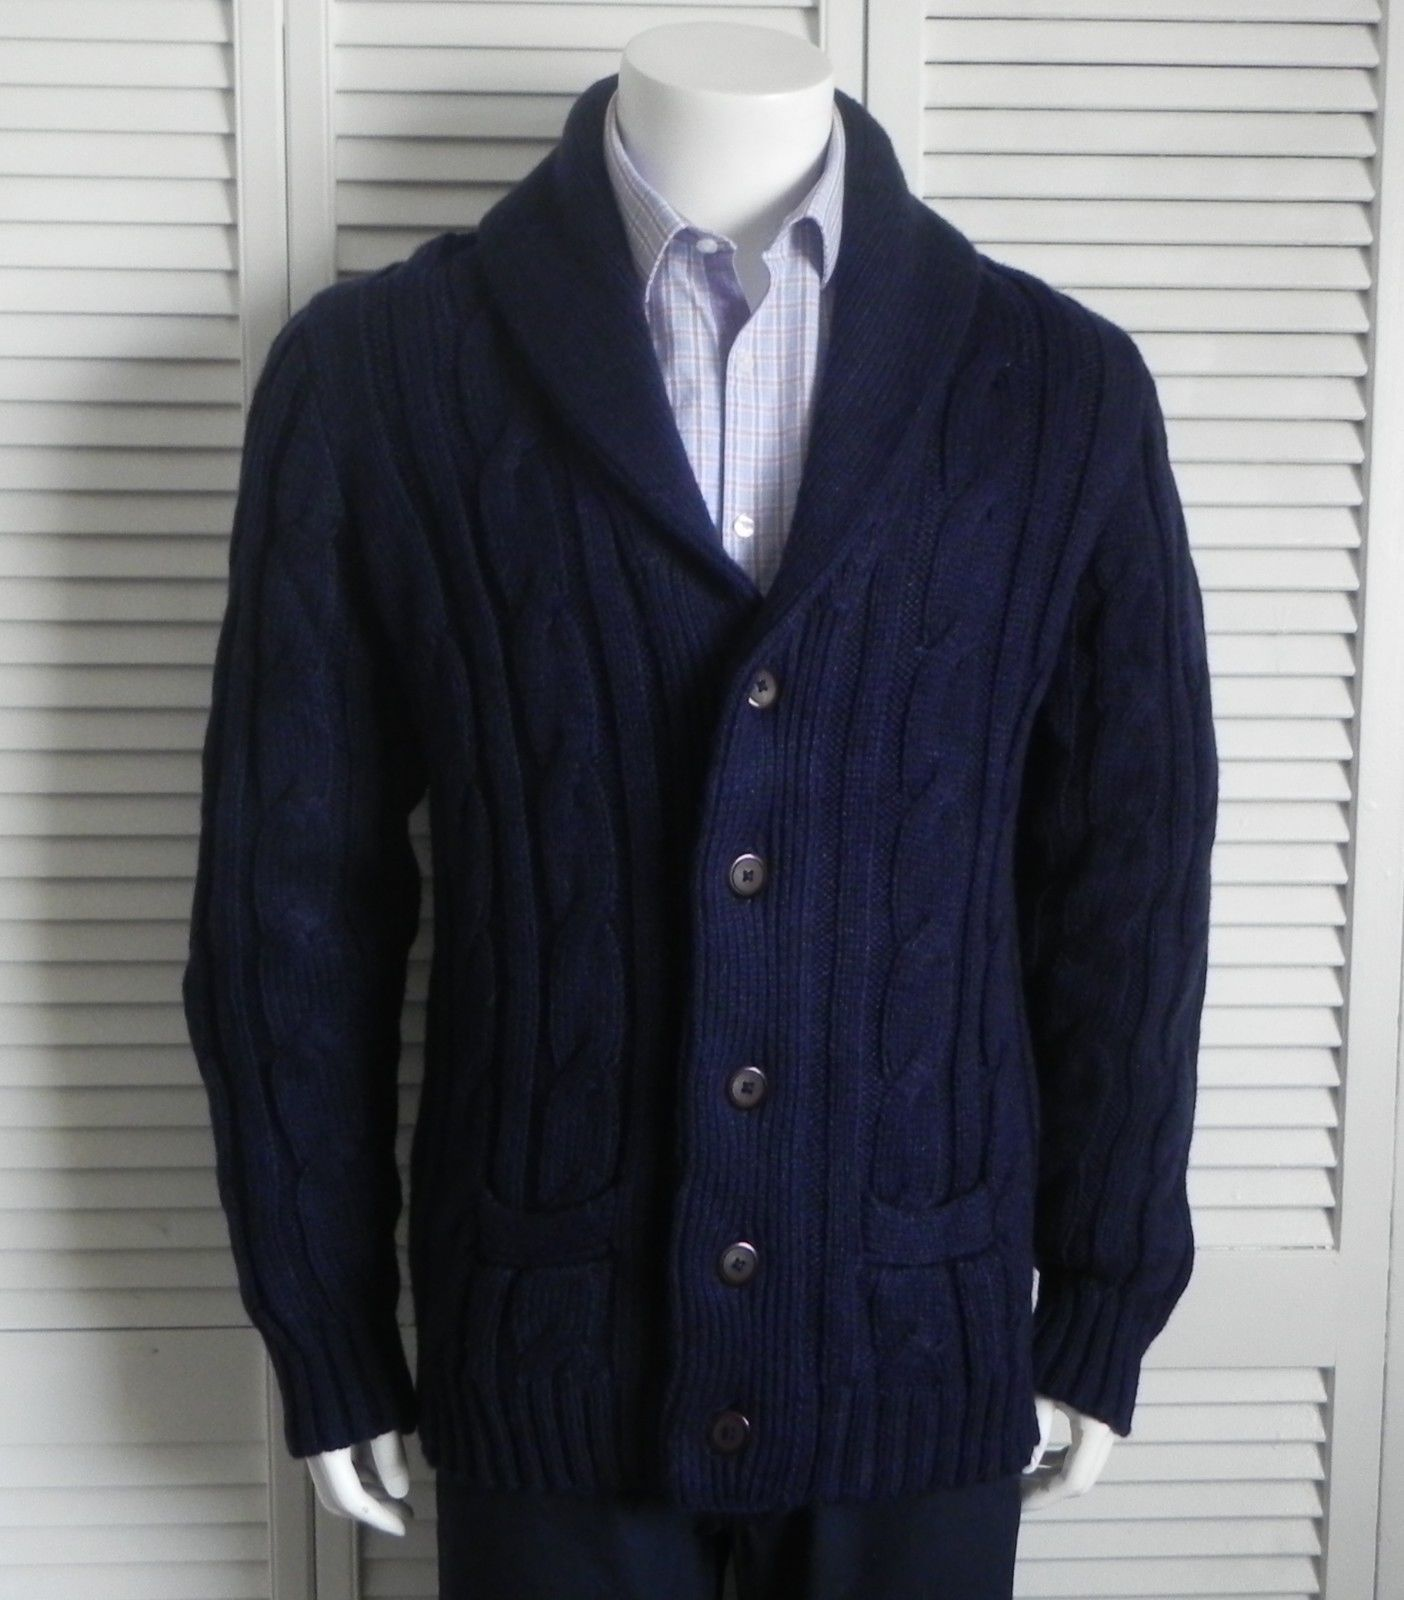 NEW Mens SZ 2XL XXL ALPACA Navy Blue Cable Knit Shawl Collar ...